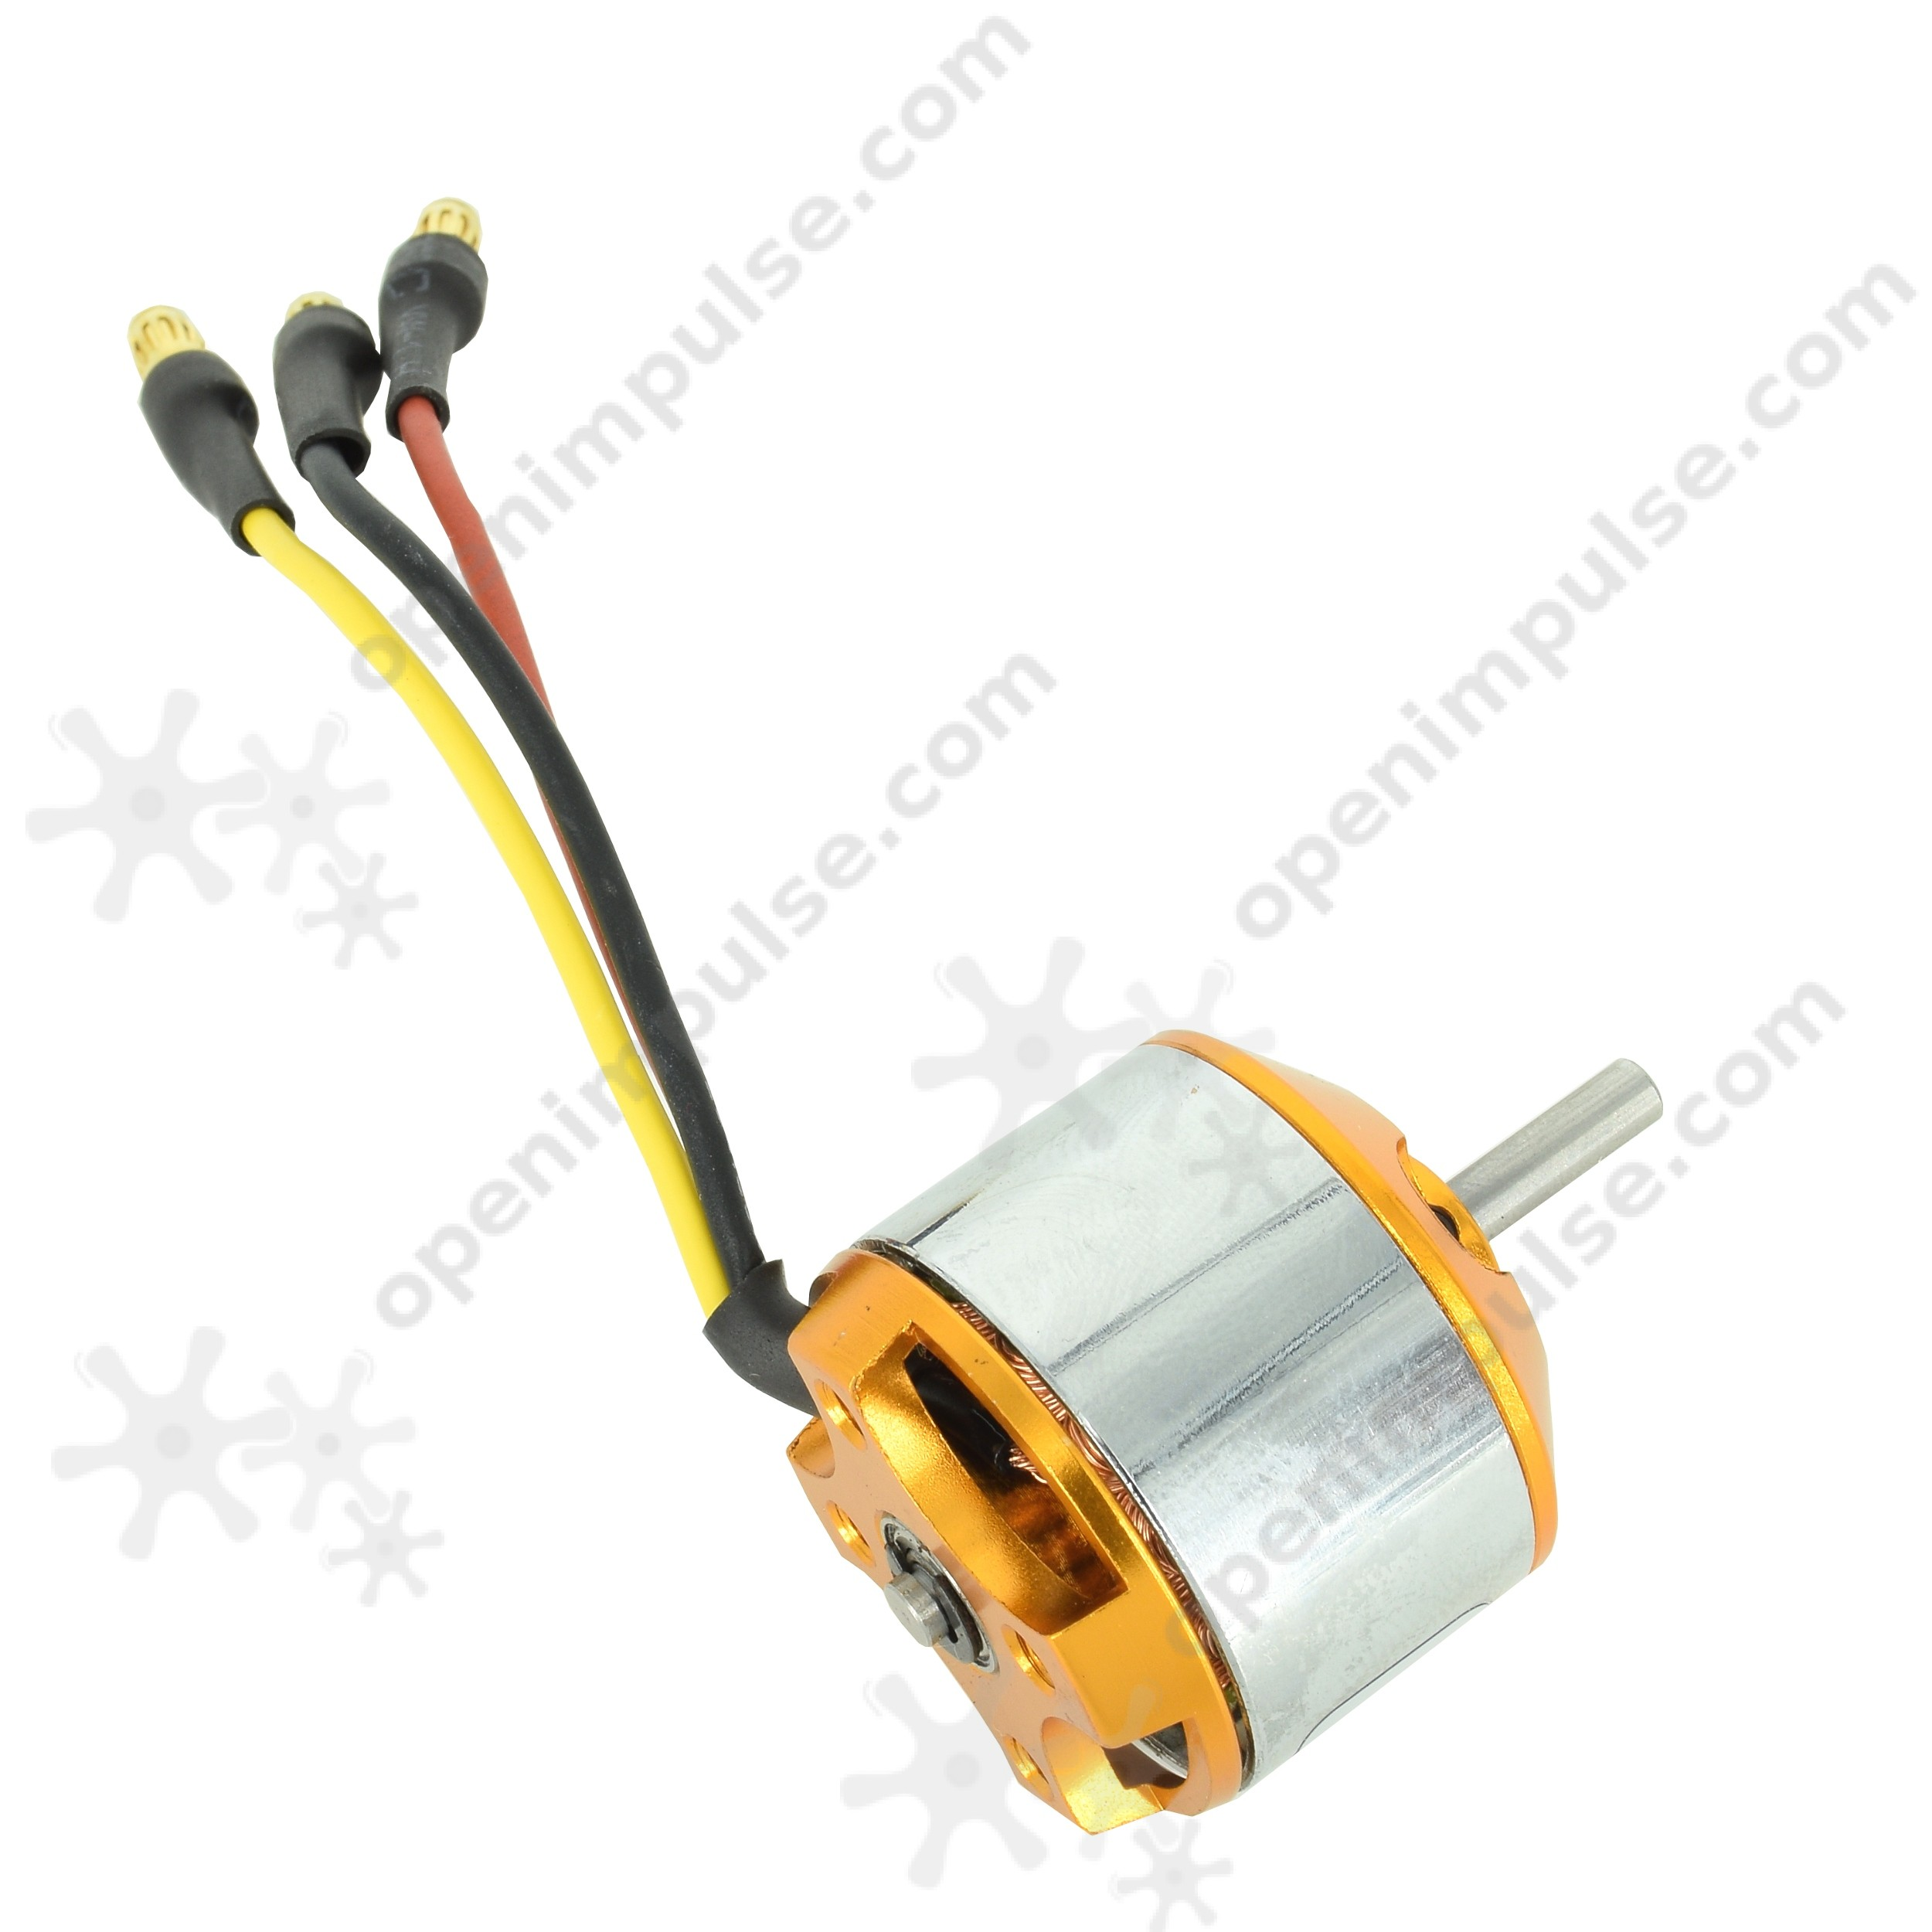 1 / 3. This is a A2212 brushless motor ...